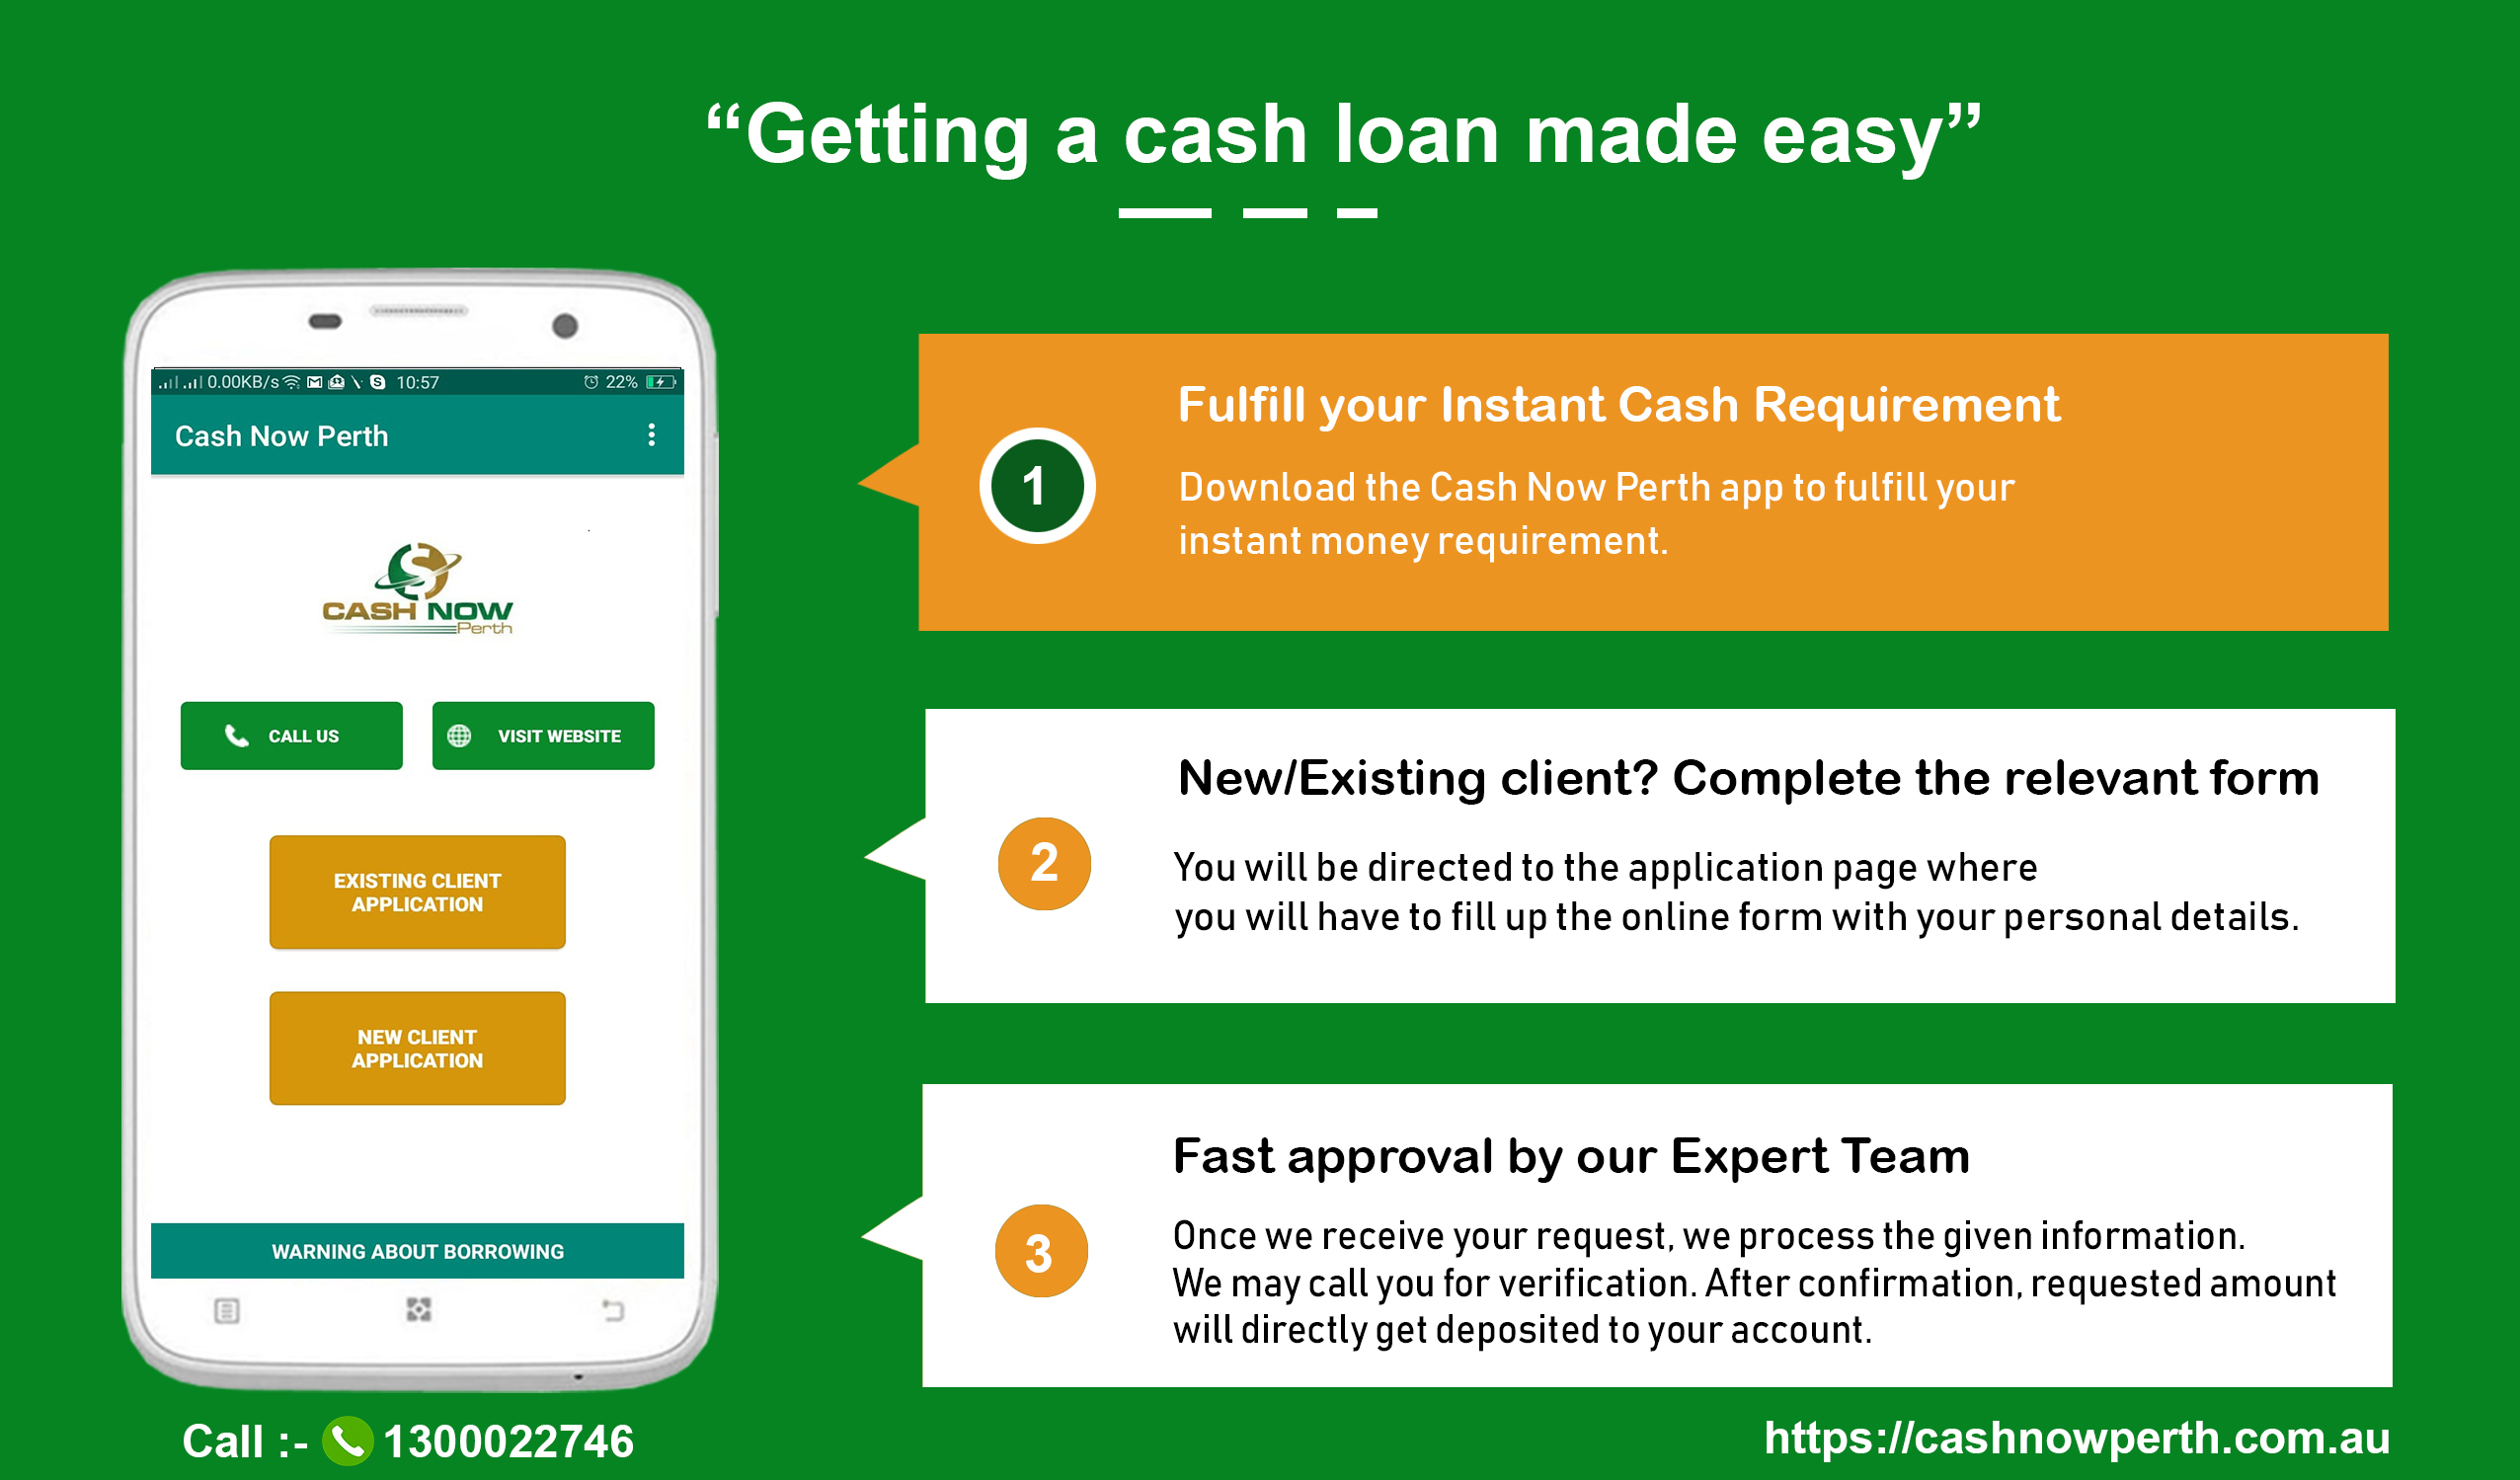 Payday Loan Australia, Payday Loan, Instant Cash Loan, reasons for payday loan,bad credit loan,instant cash loan in same day,cash loans online for medical emergencies,cash loans to EMI